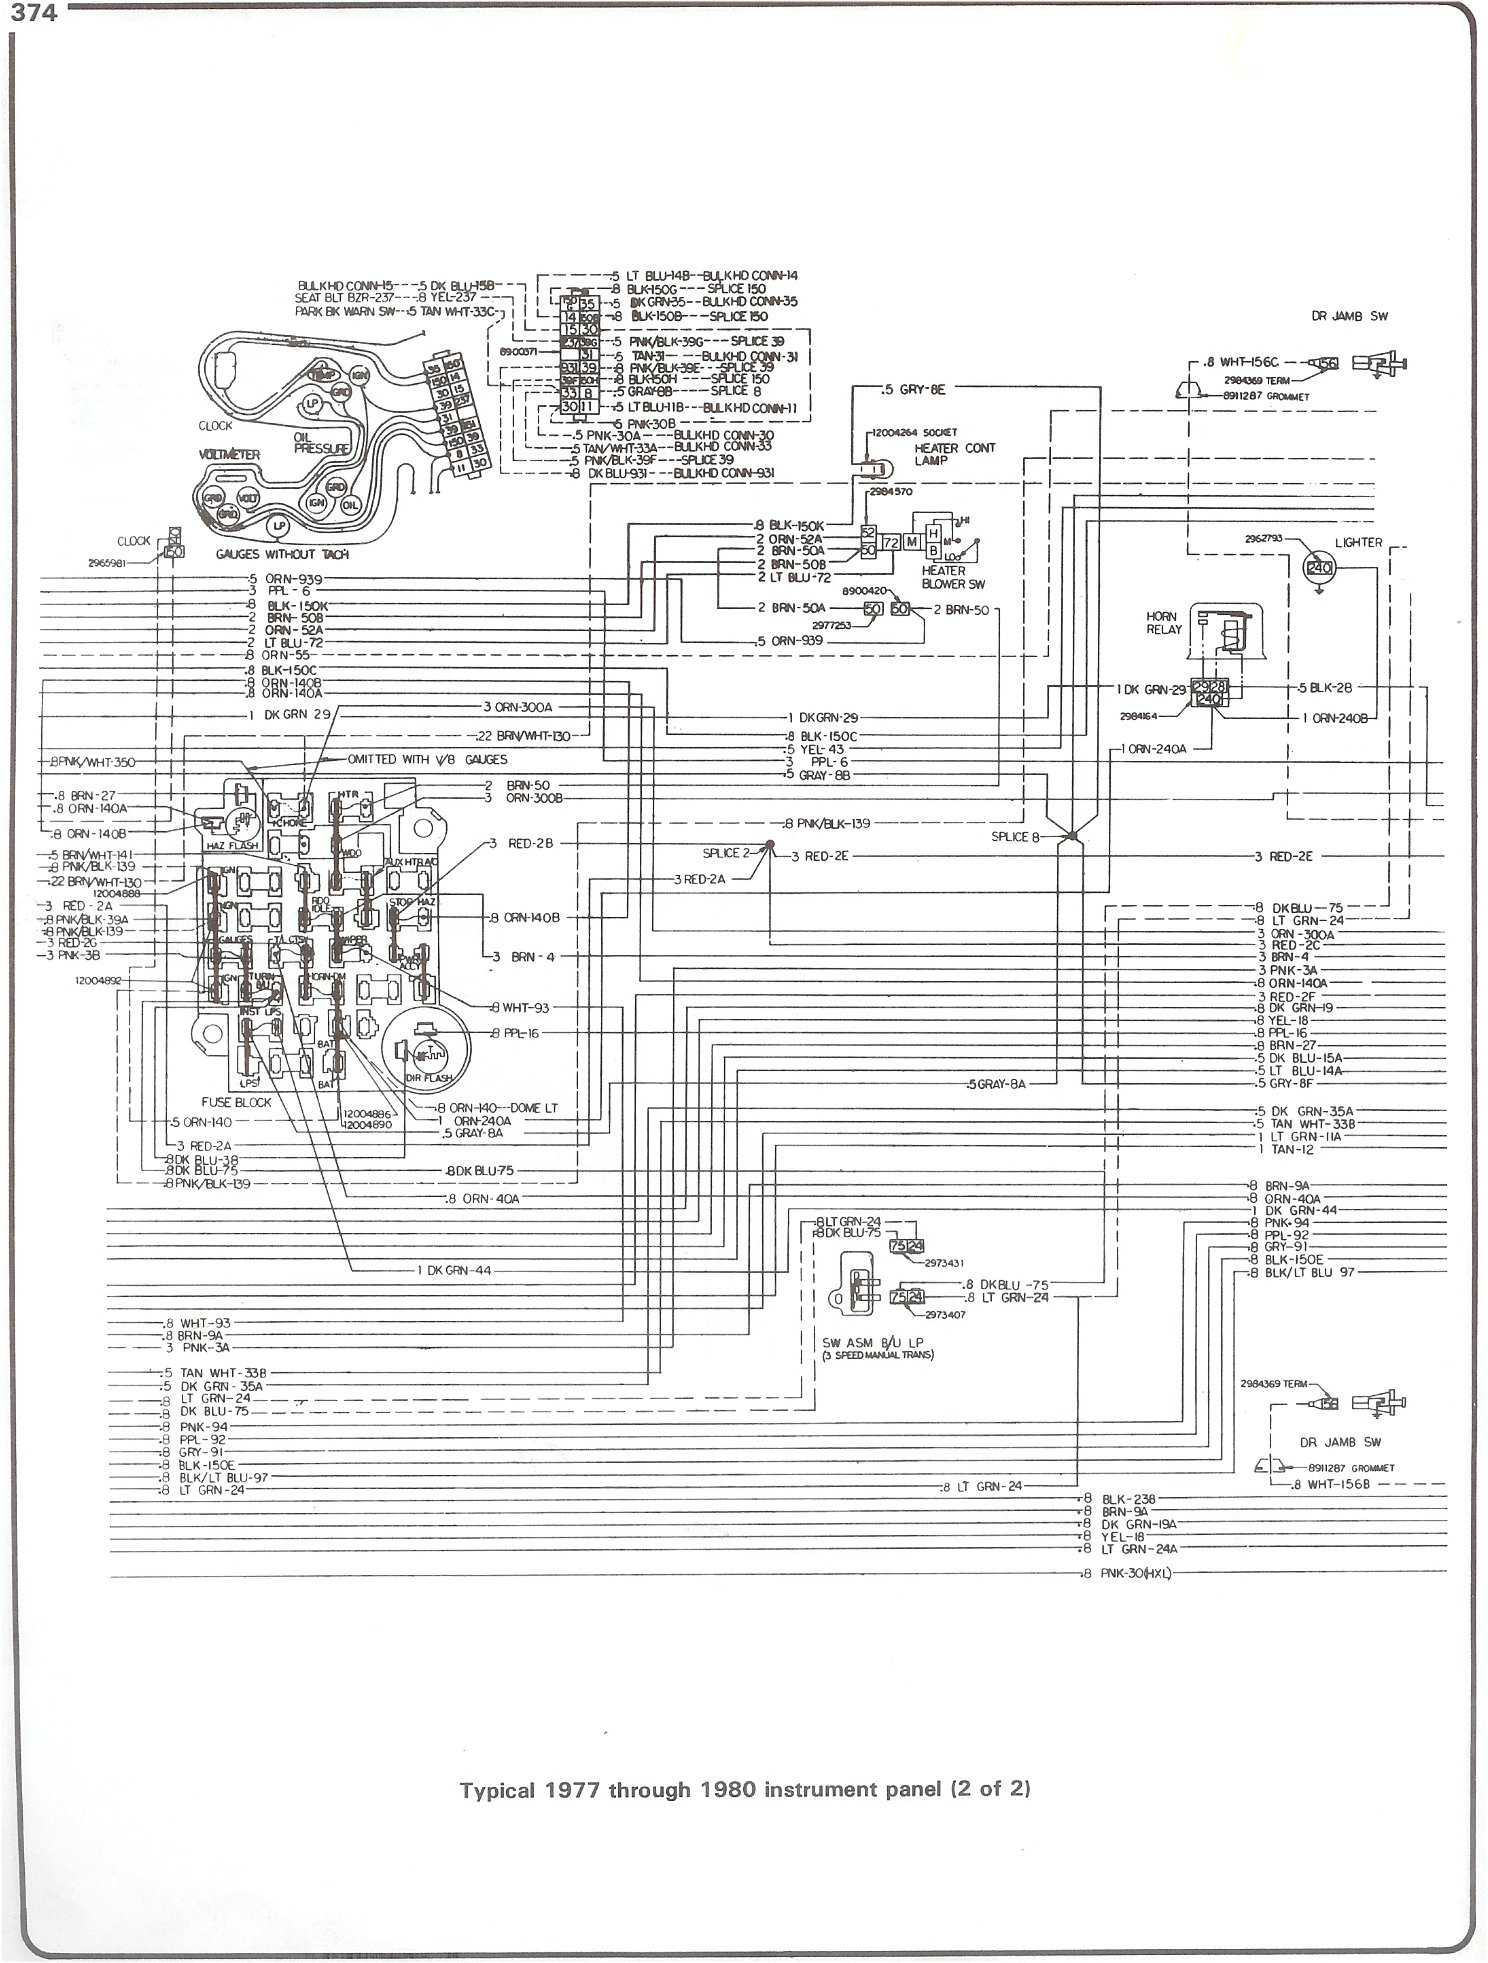 wiring diagram for 1978 chevy truck wiring diagram post 1957 Chevrolet Wiring Diagram